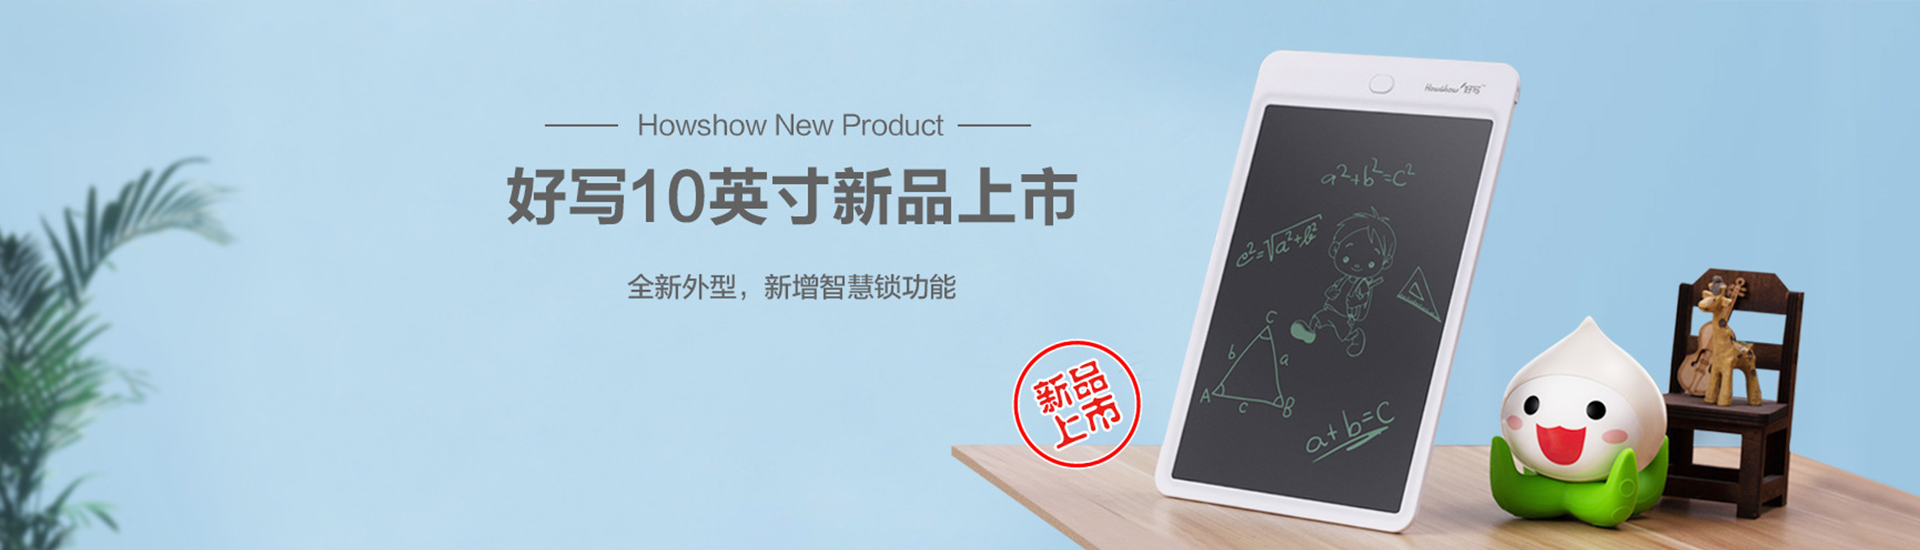 Howshow New Product,Howshow 10英寸新品上市,全新外型,新增智慧锁功能